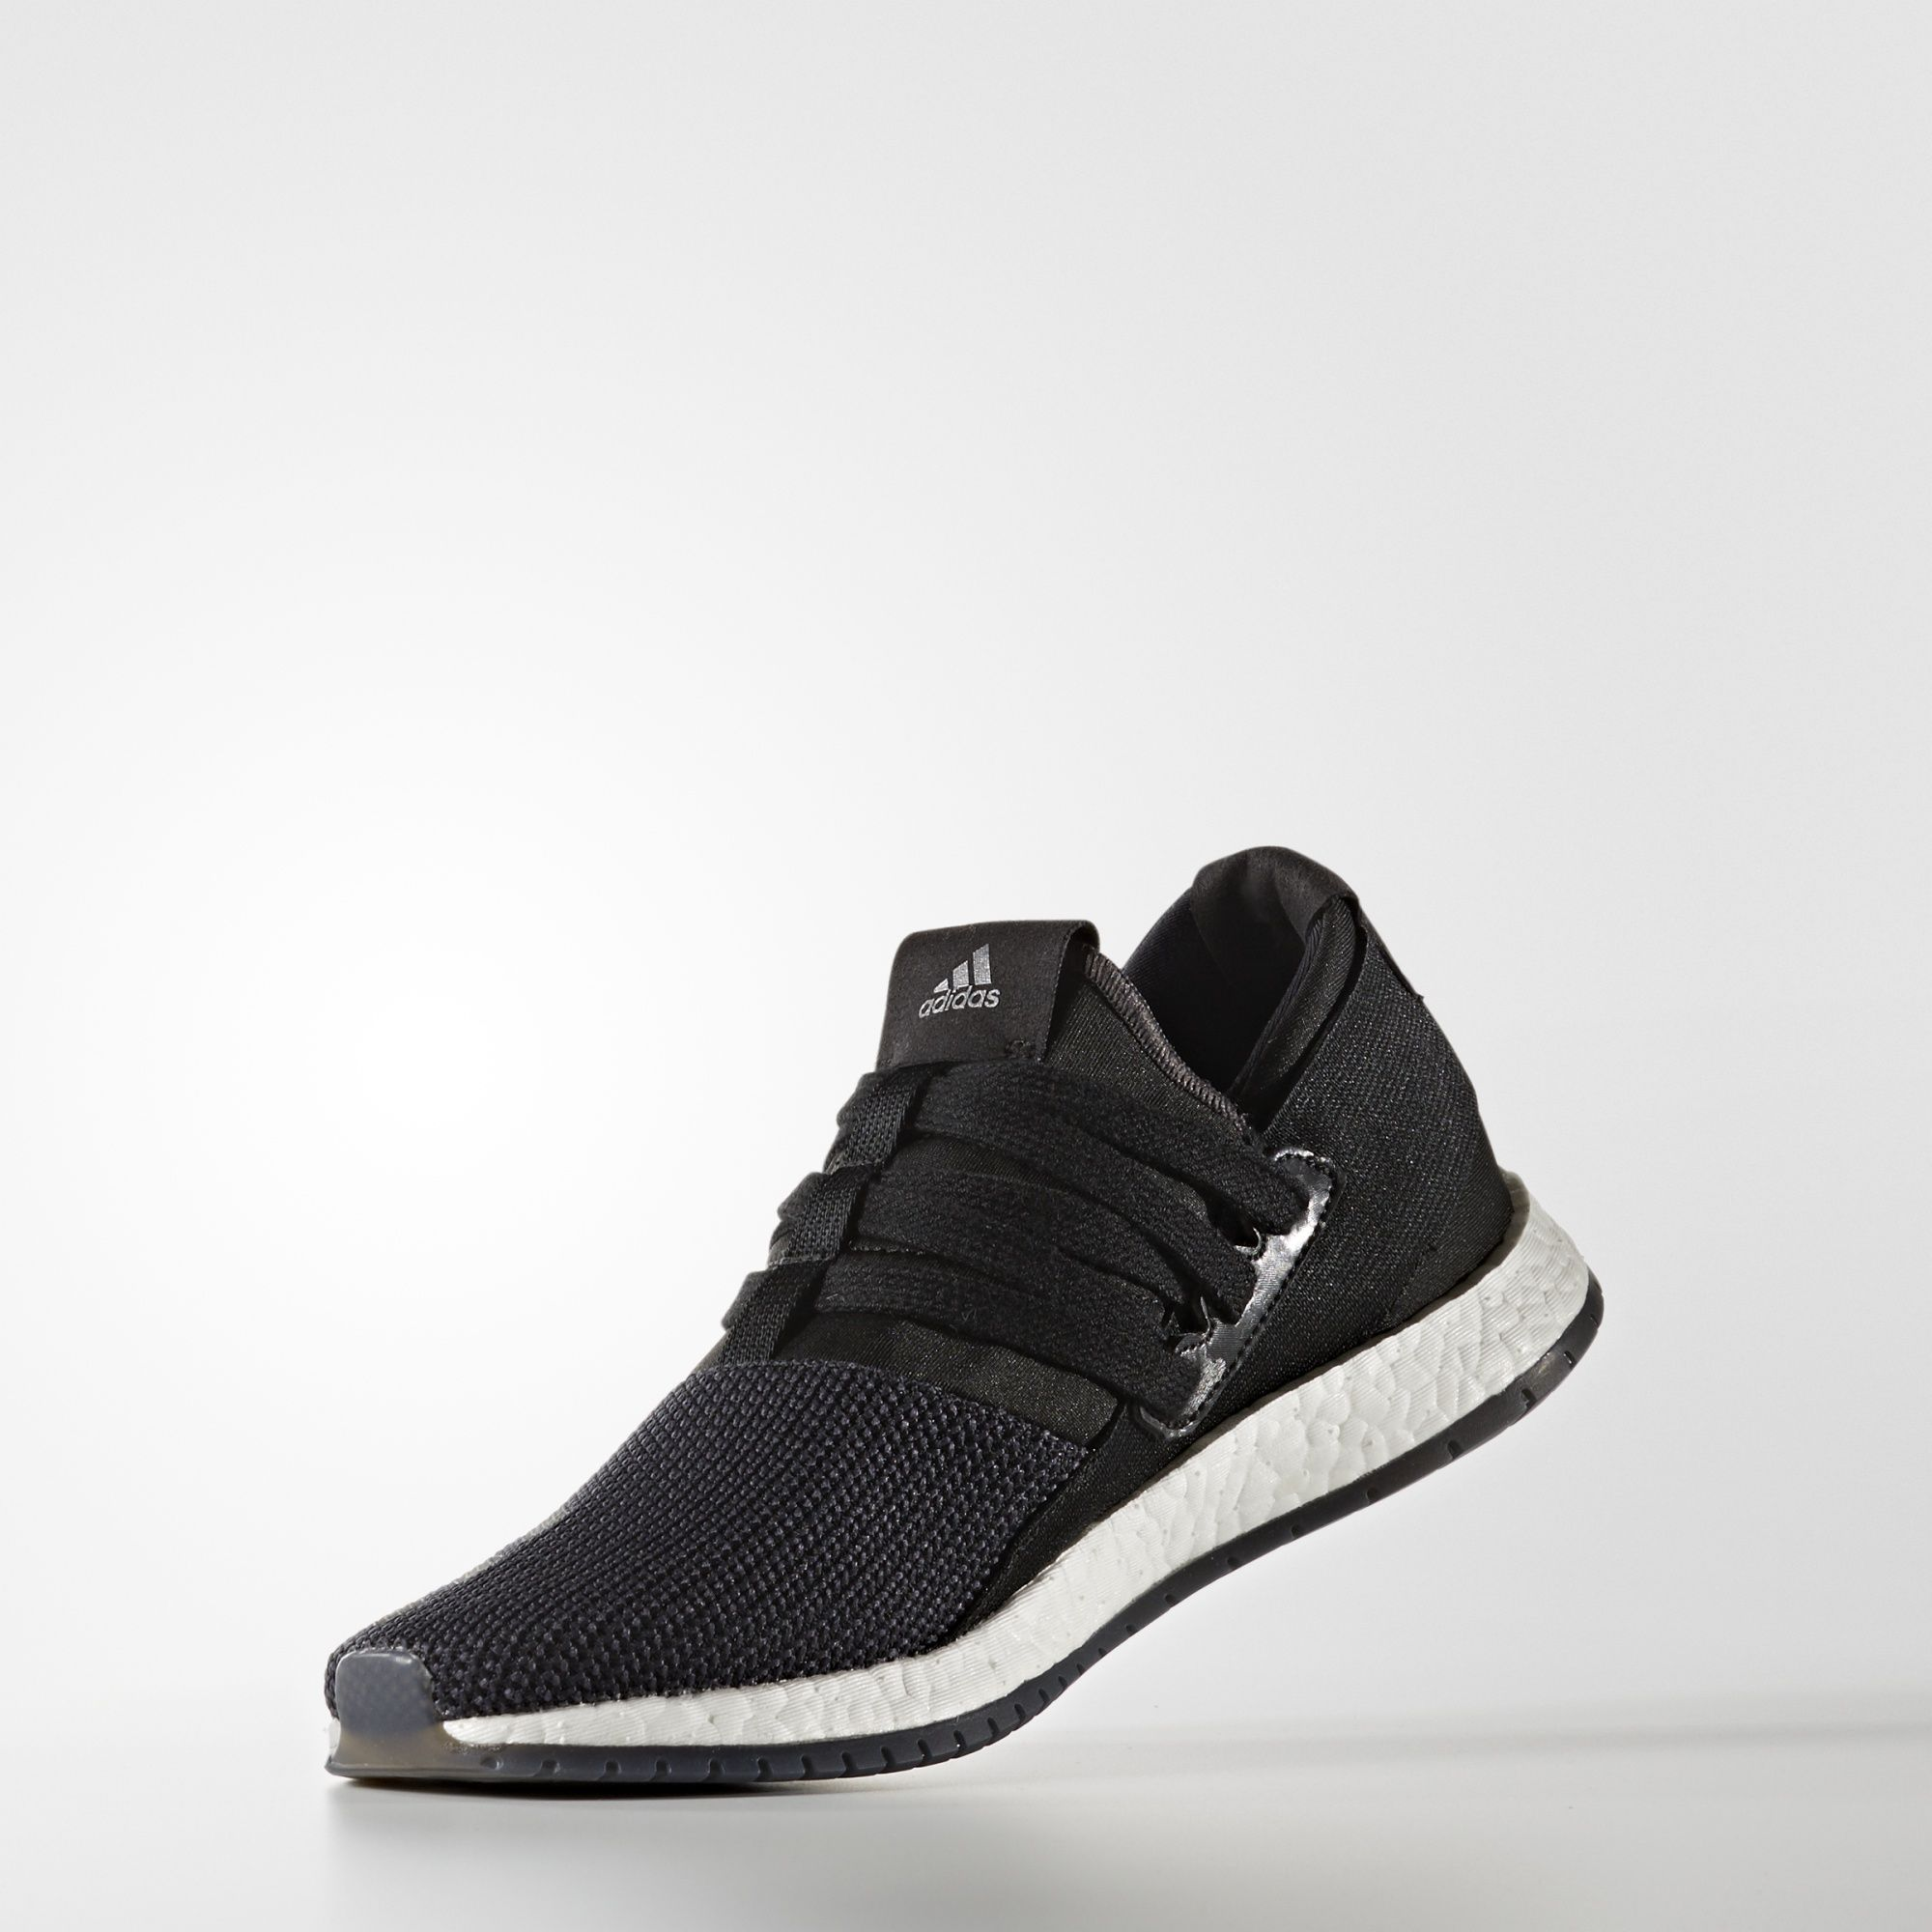 adidas - Women's Pure Boost R Shoes | Adidas pure boost, Adidas, Shoes